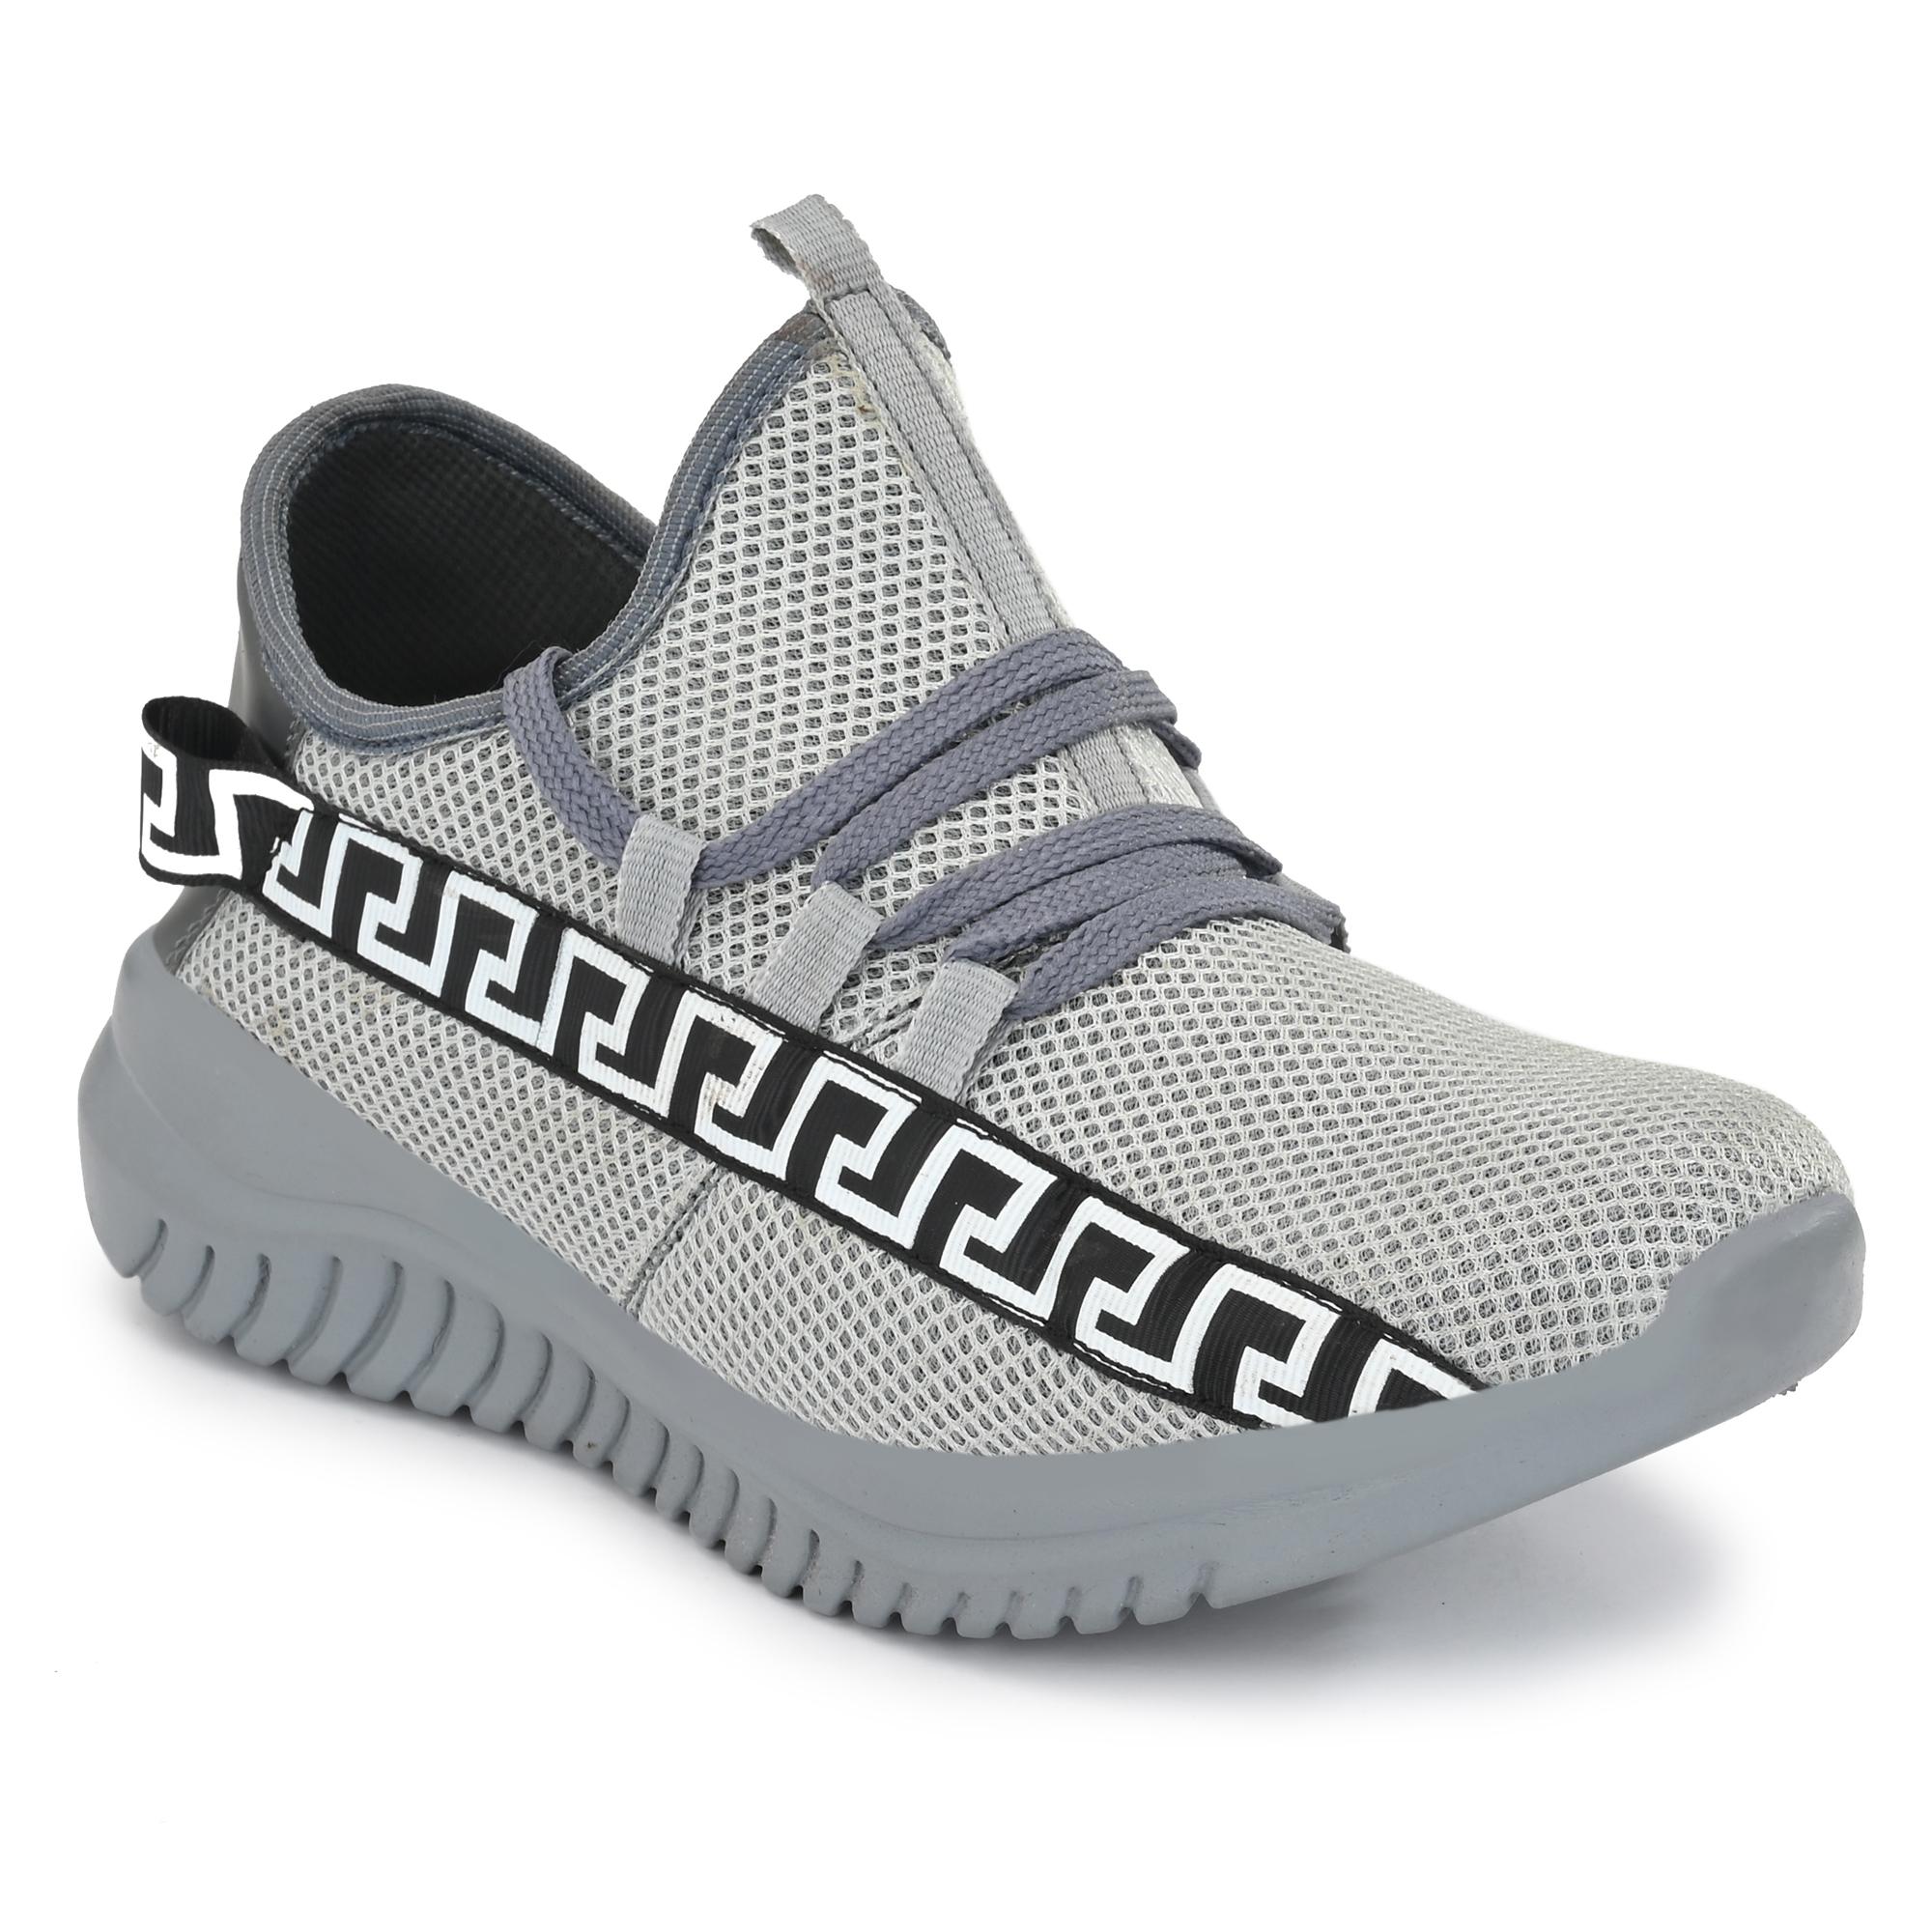 Almighty Gray Air Series Mesh Casual Shoes MNGR01 (Gray, 6-10, 8 PAIRS)